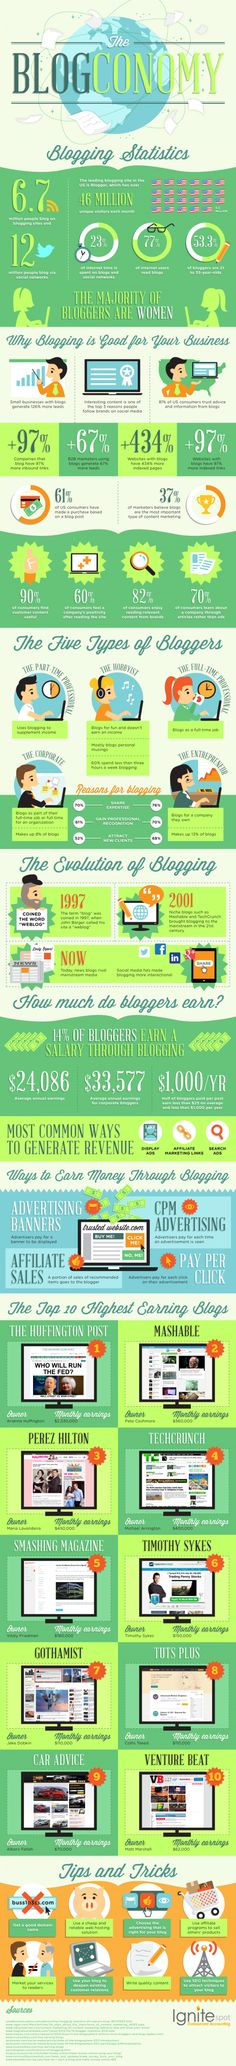 The Blogconomy [infographic]